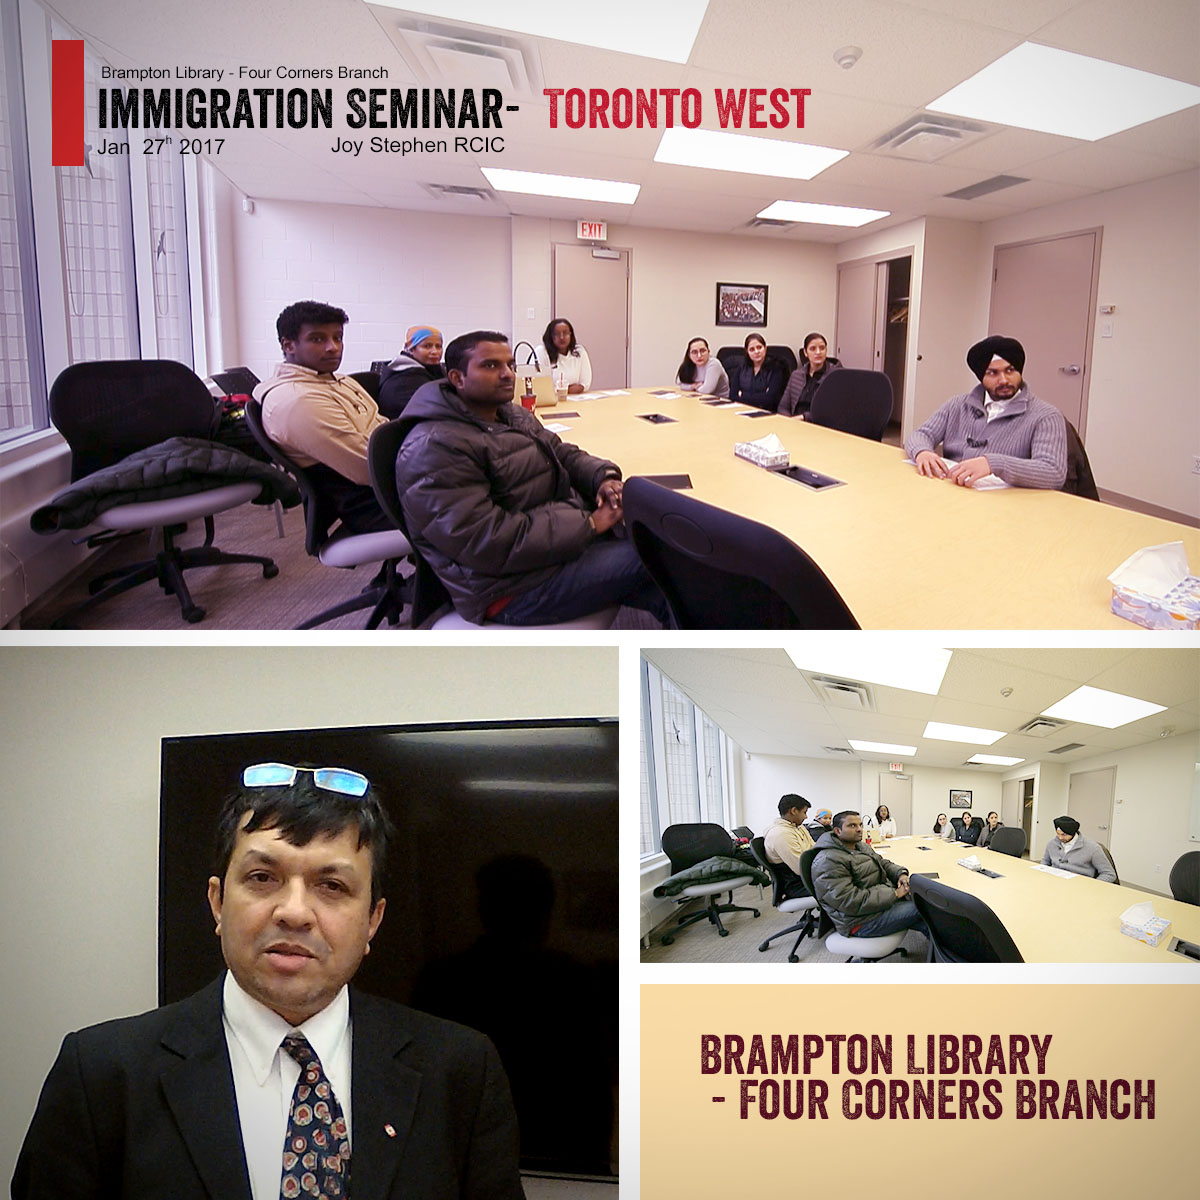 Canada Immigration Seminar by Joy Stephen RCIC